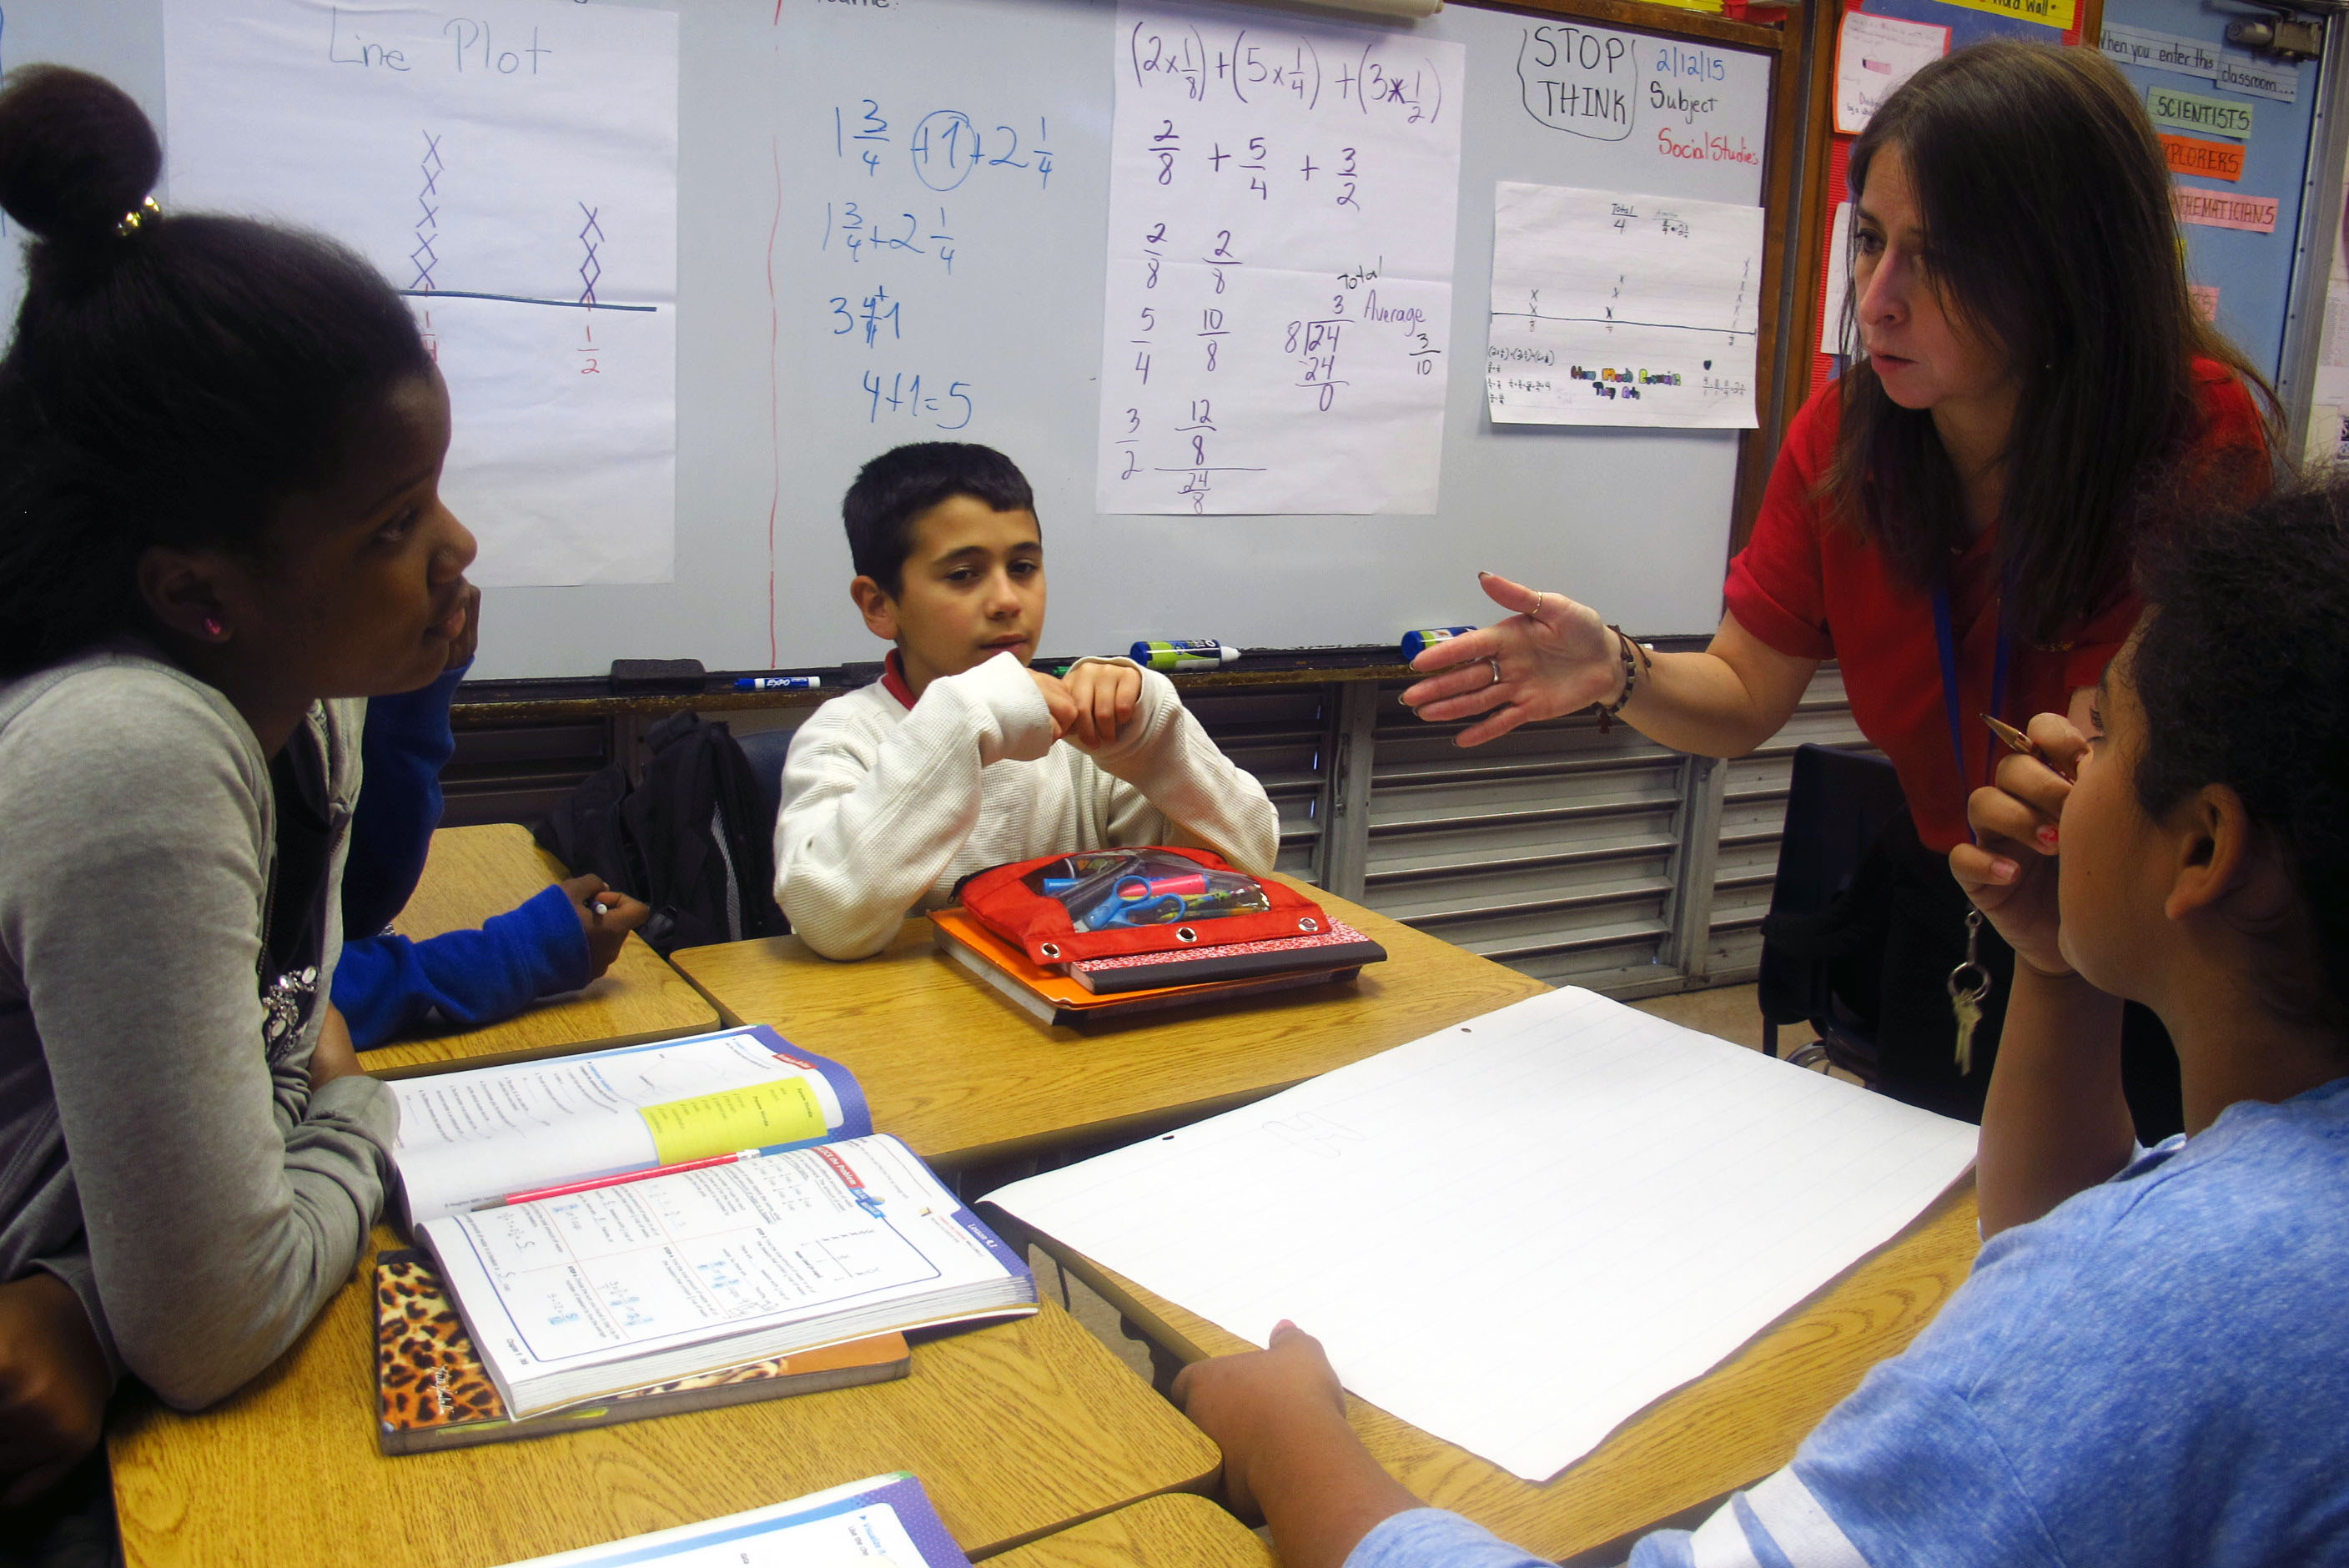 Worksheet Elementary Maths why elementary math lessons are changing in florida schools frances s tucker schoo fifth grade teacher yaliesperanza salazar leads her class through